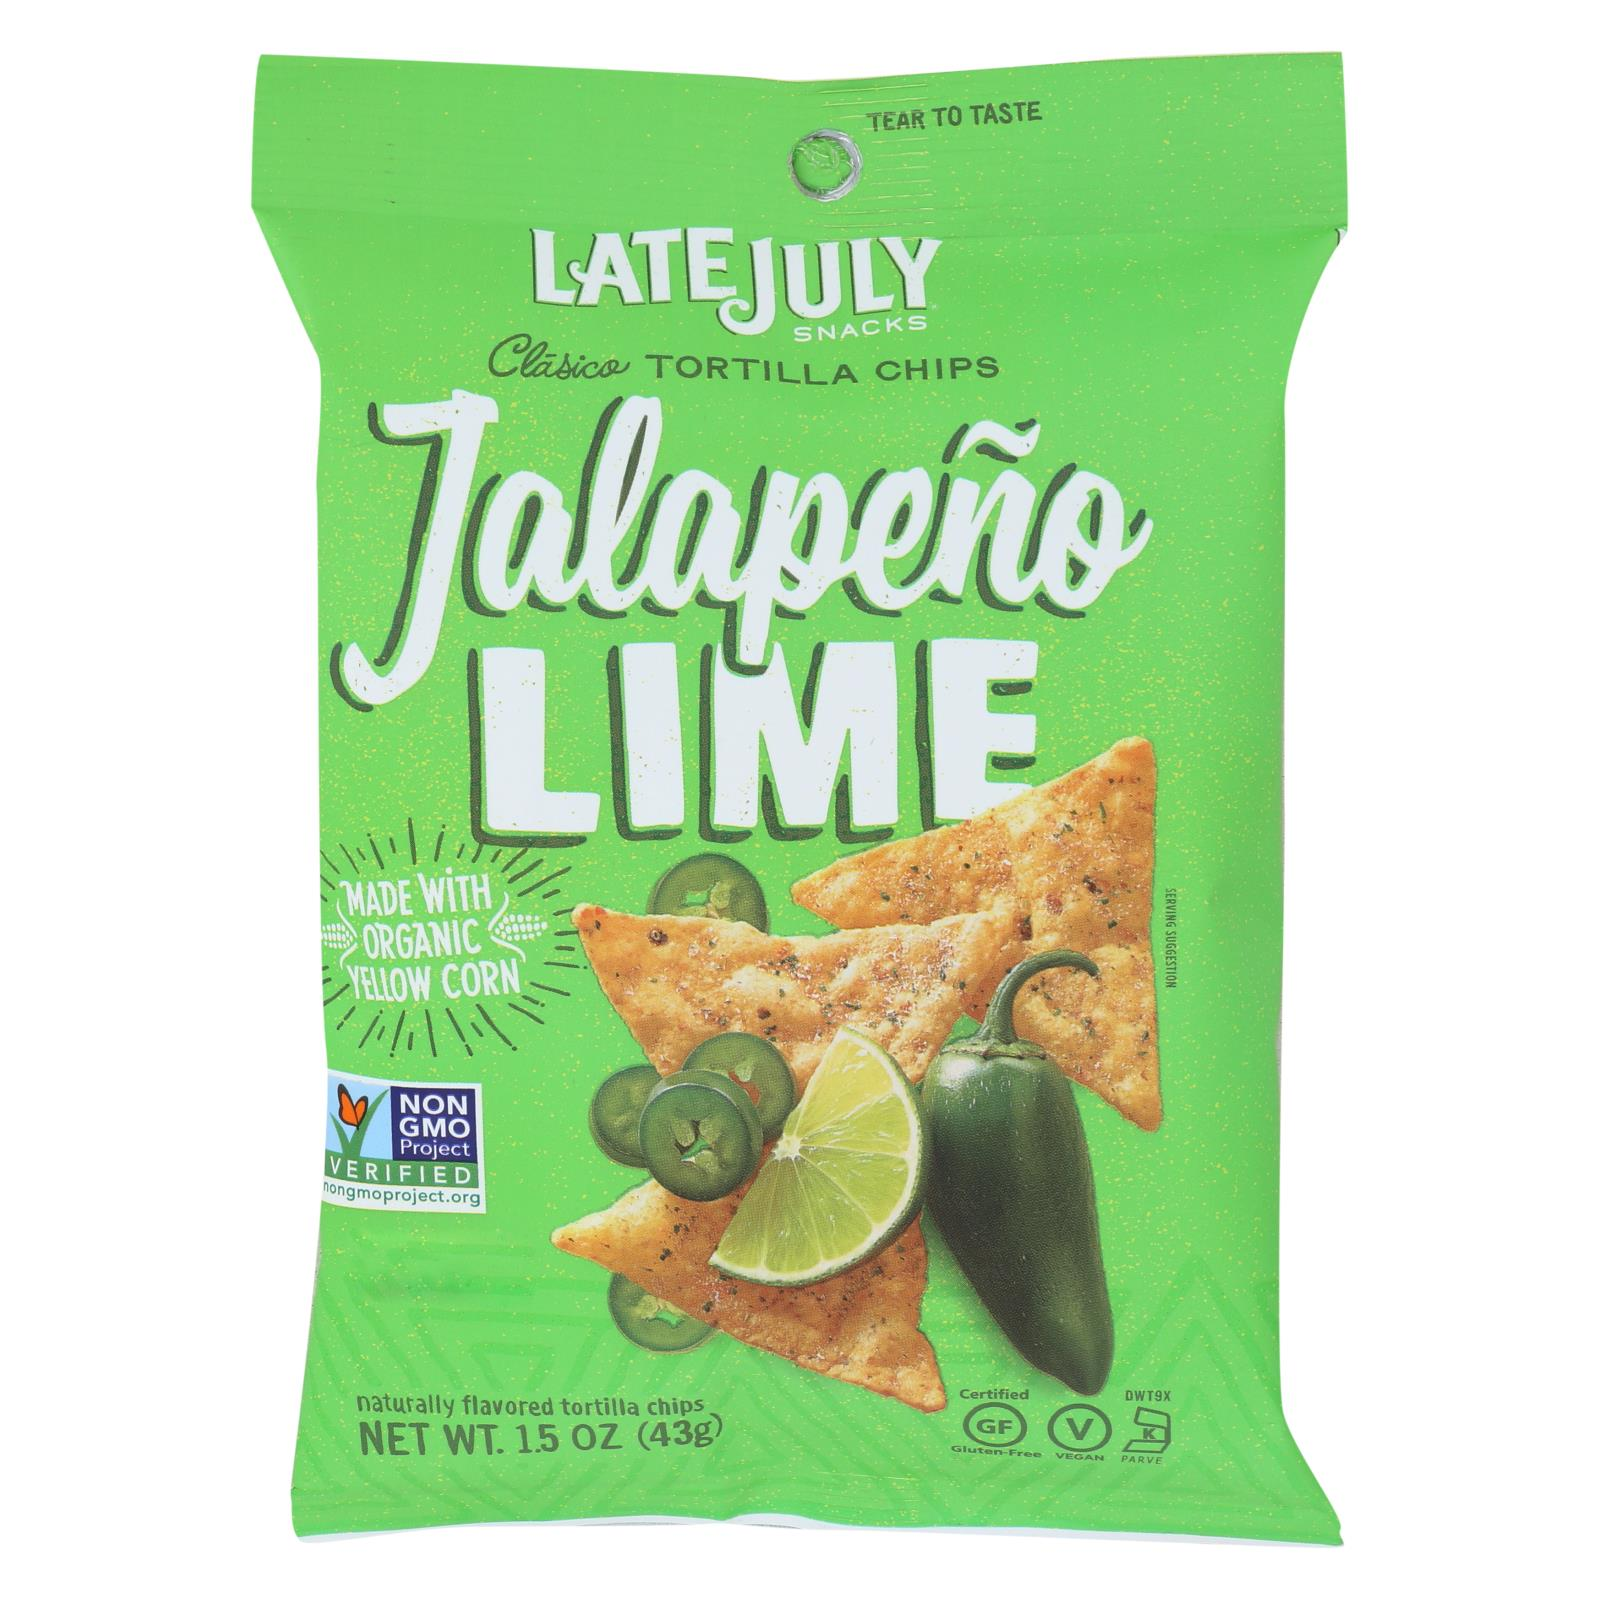 Late July Jalapeno Lime Tortilla Chips - Snack Pack